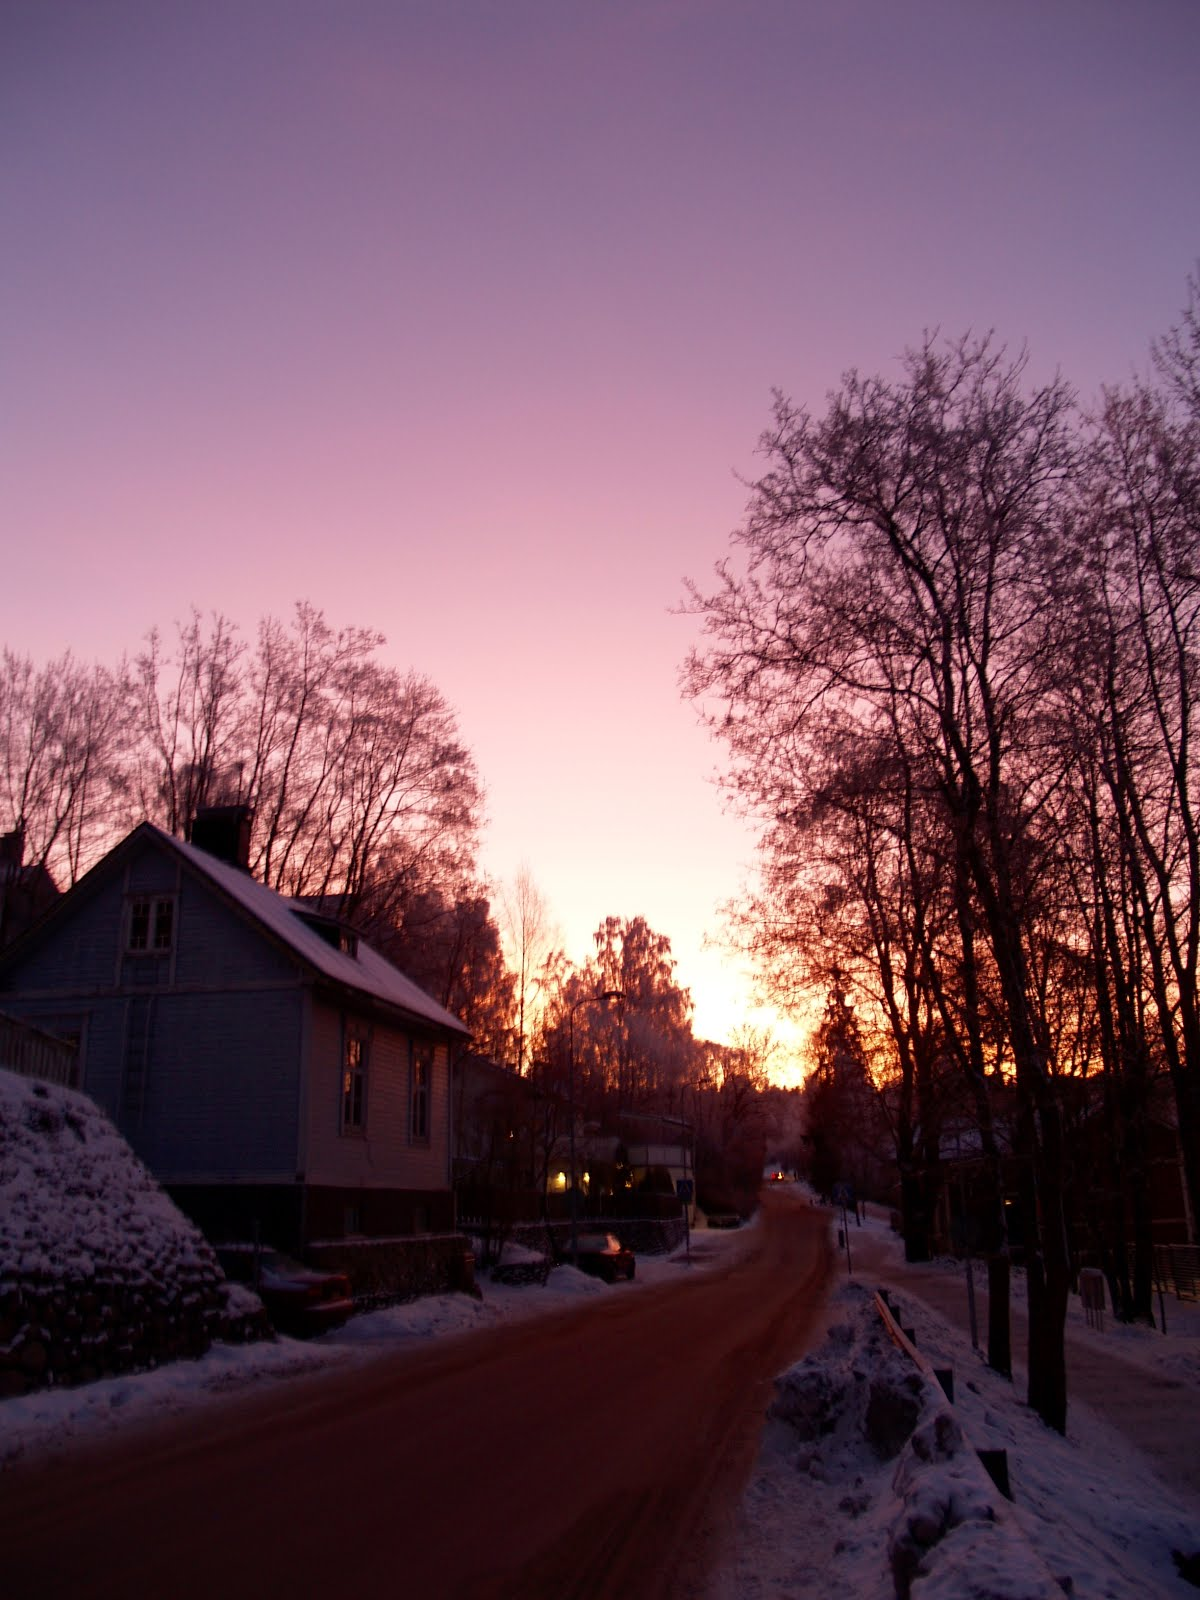 My Beautiful Ordinary Life In Finland How Do The Finnish People Live And Love Winter Good Morning Now It Is Cold